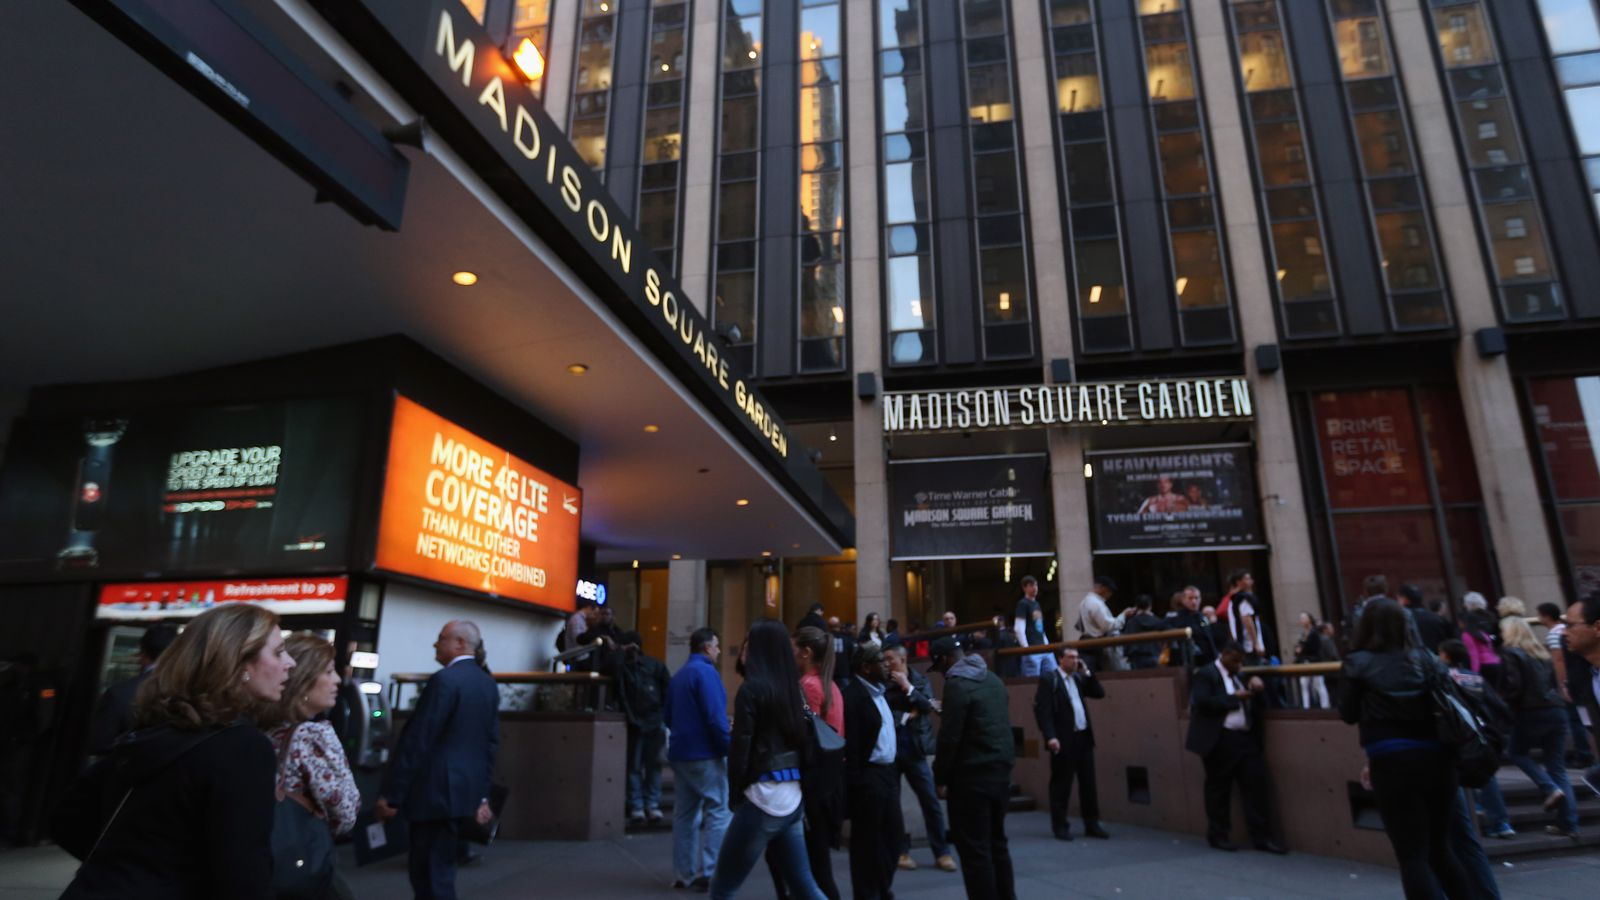 What to eat at madison square garden 2016 edition eater ny for Restaurants around madison square garden